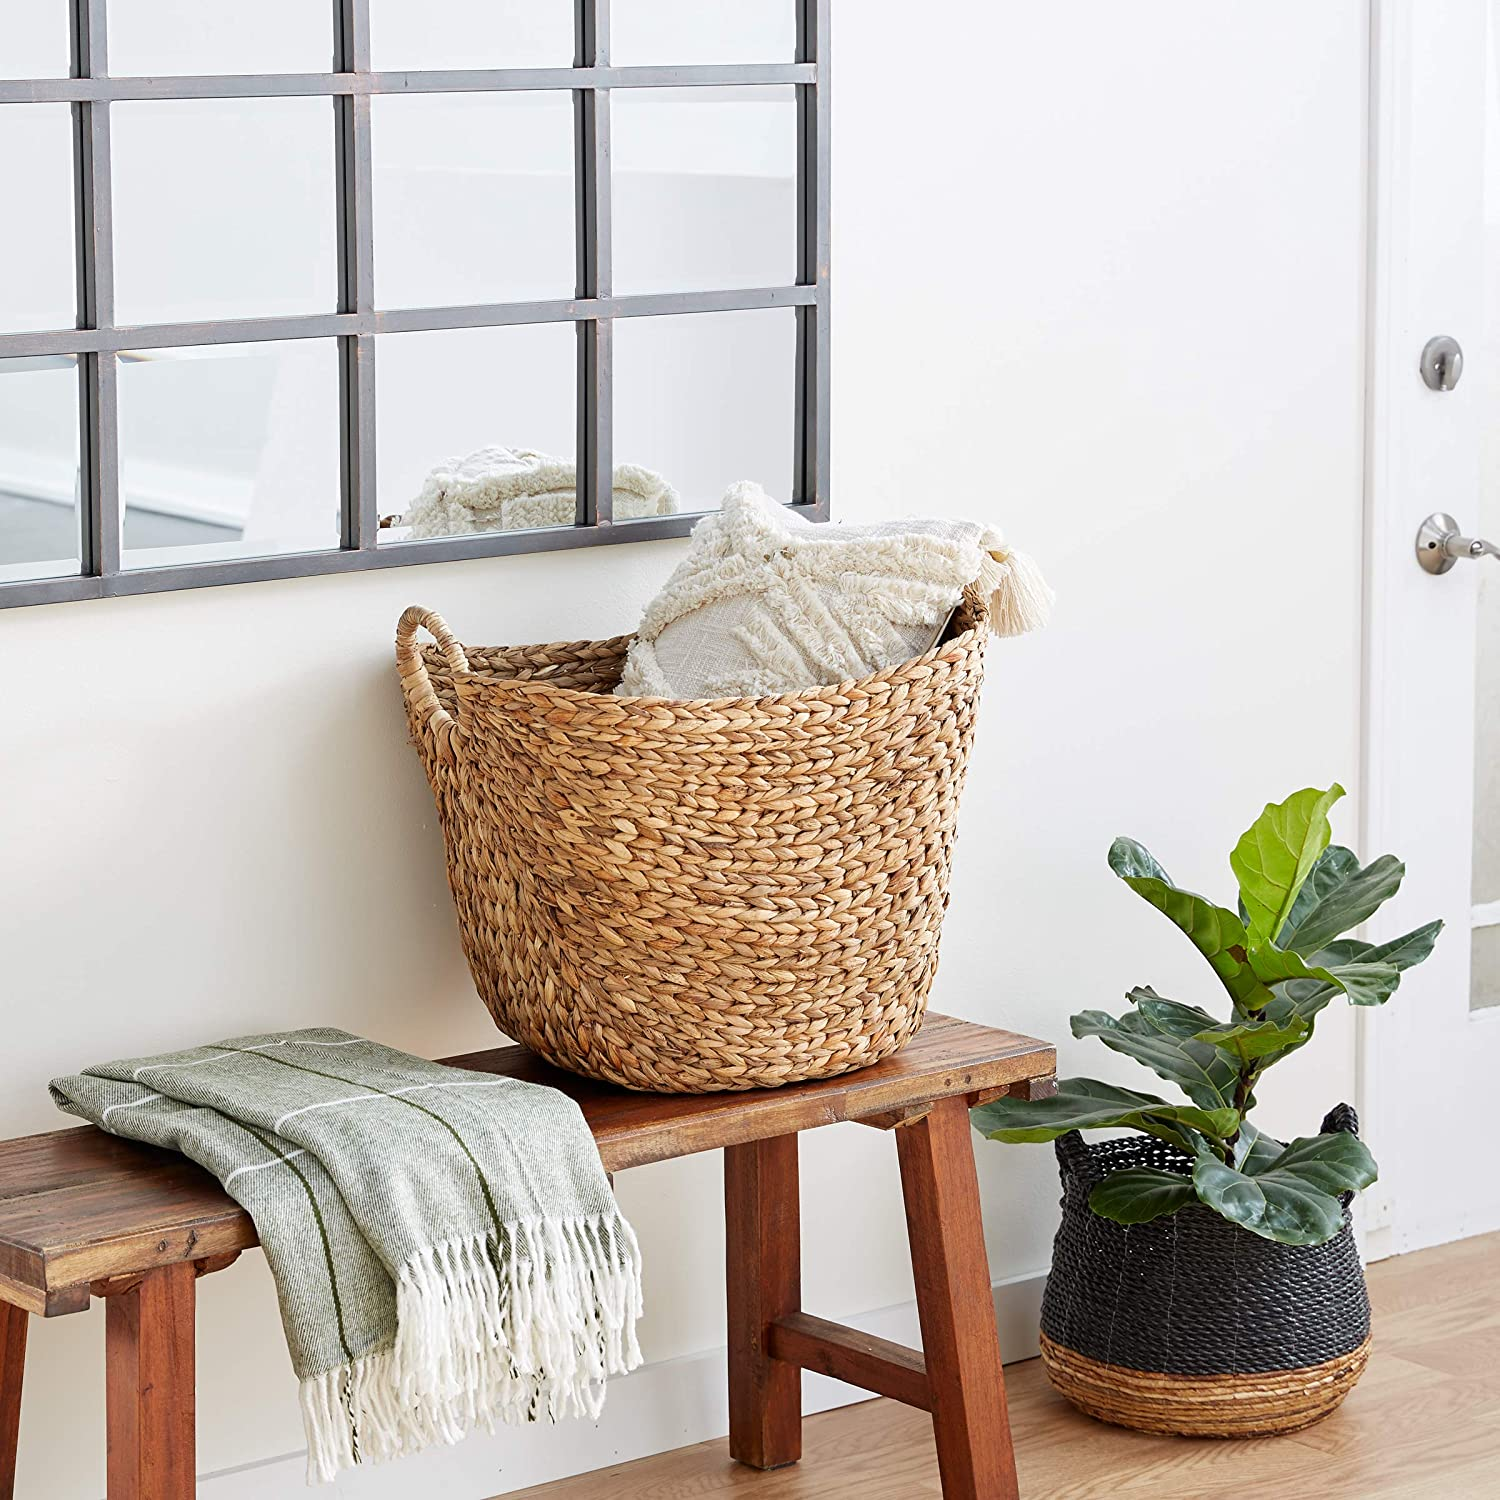 Deco 79 Large Seagrass Woven Wicker Basket With Arched Handles Rustic Natural Brown Finish As Coastal Decorative Accent Or Storage 21 W X 17 L X 17 H